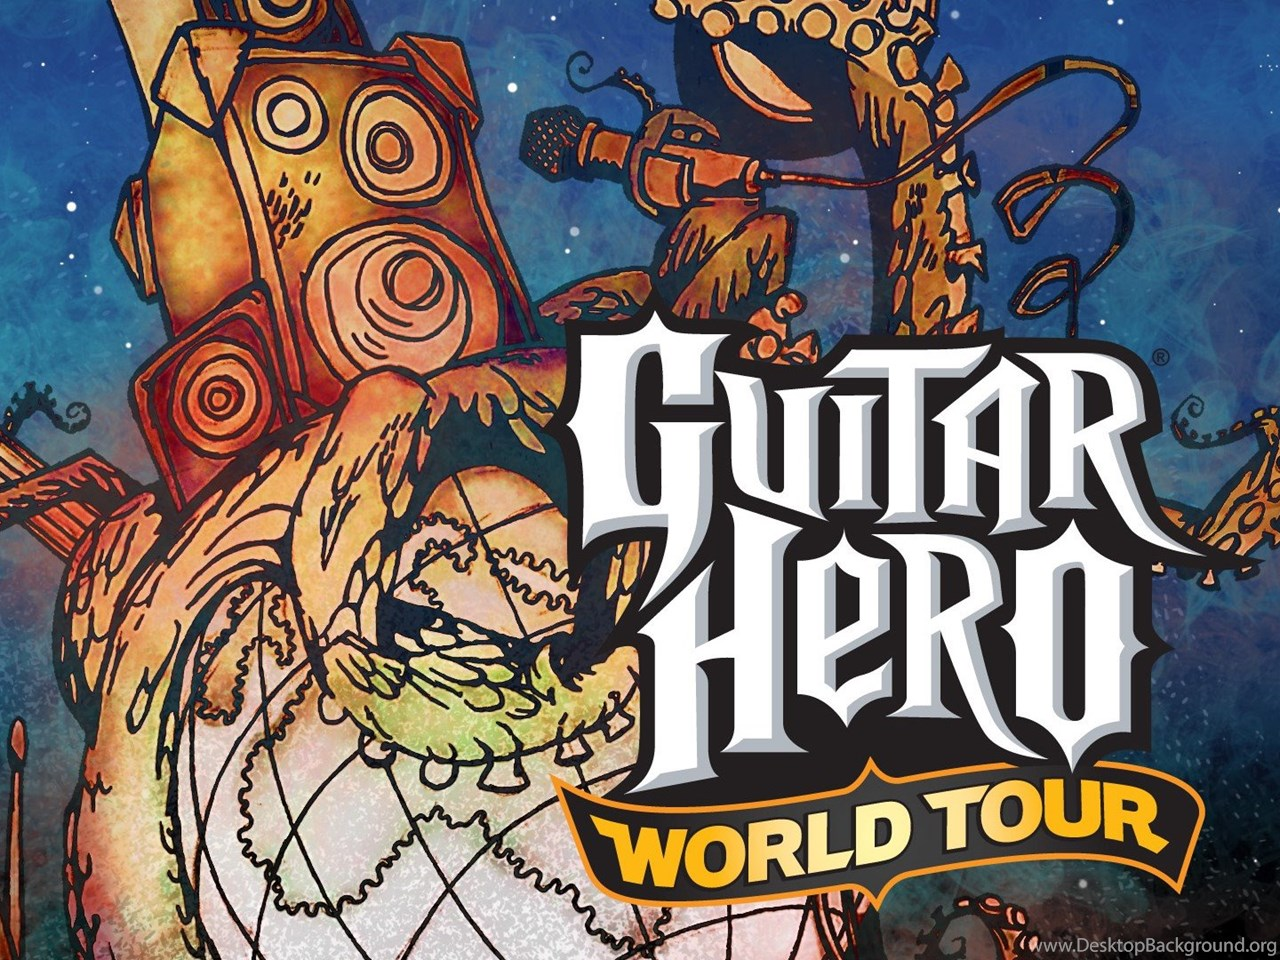 Guitar Hero Wallpapers 9 1920x1080 Pixels Wallpapers Tagged Game Desktop Background